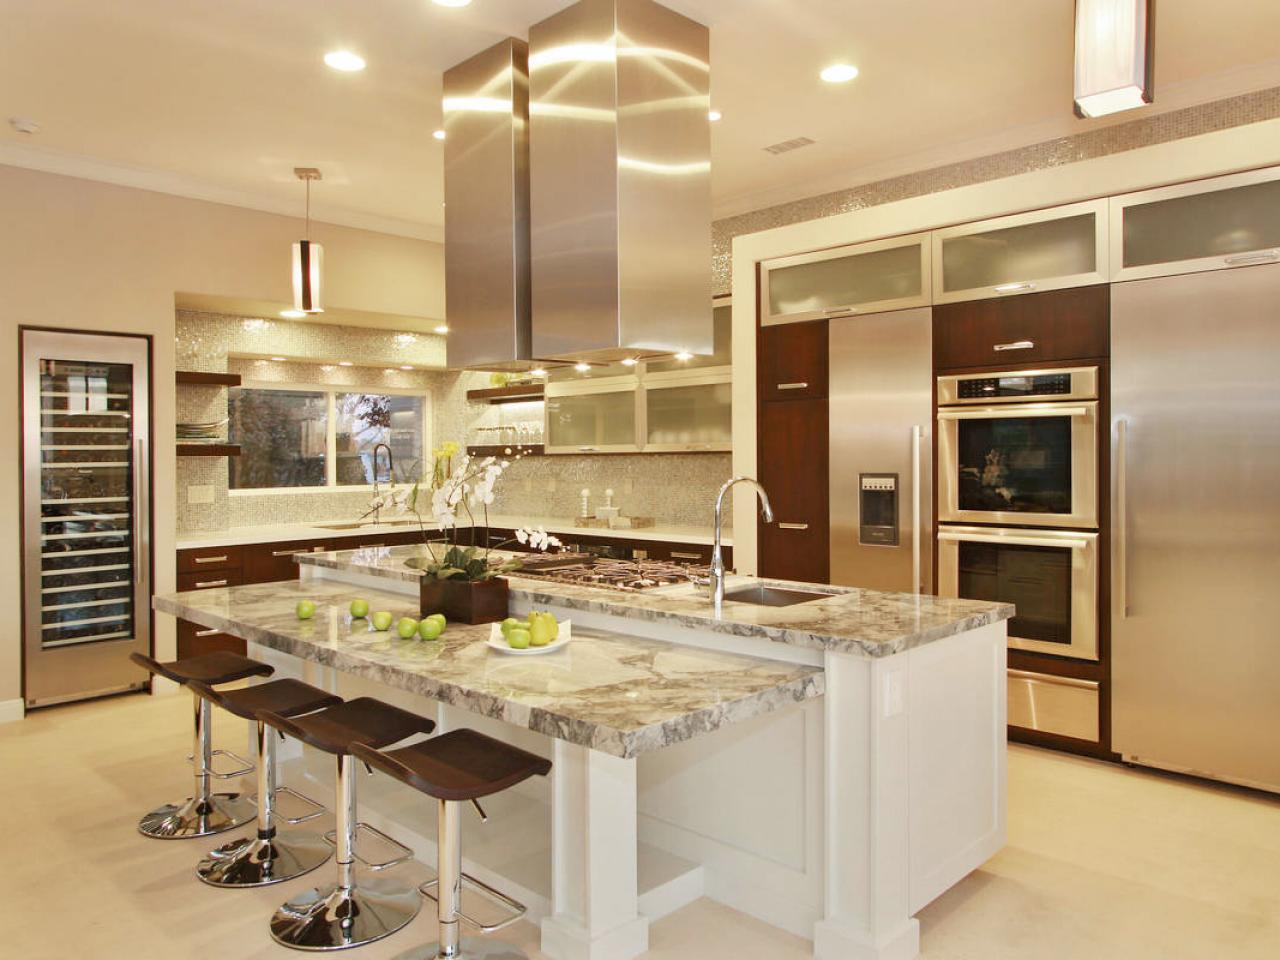 3 Best Kitchen Layout Ideas For House With Small Space Artmakehome,Benjamin Moore Historical Colors Red